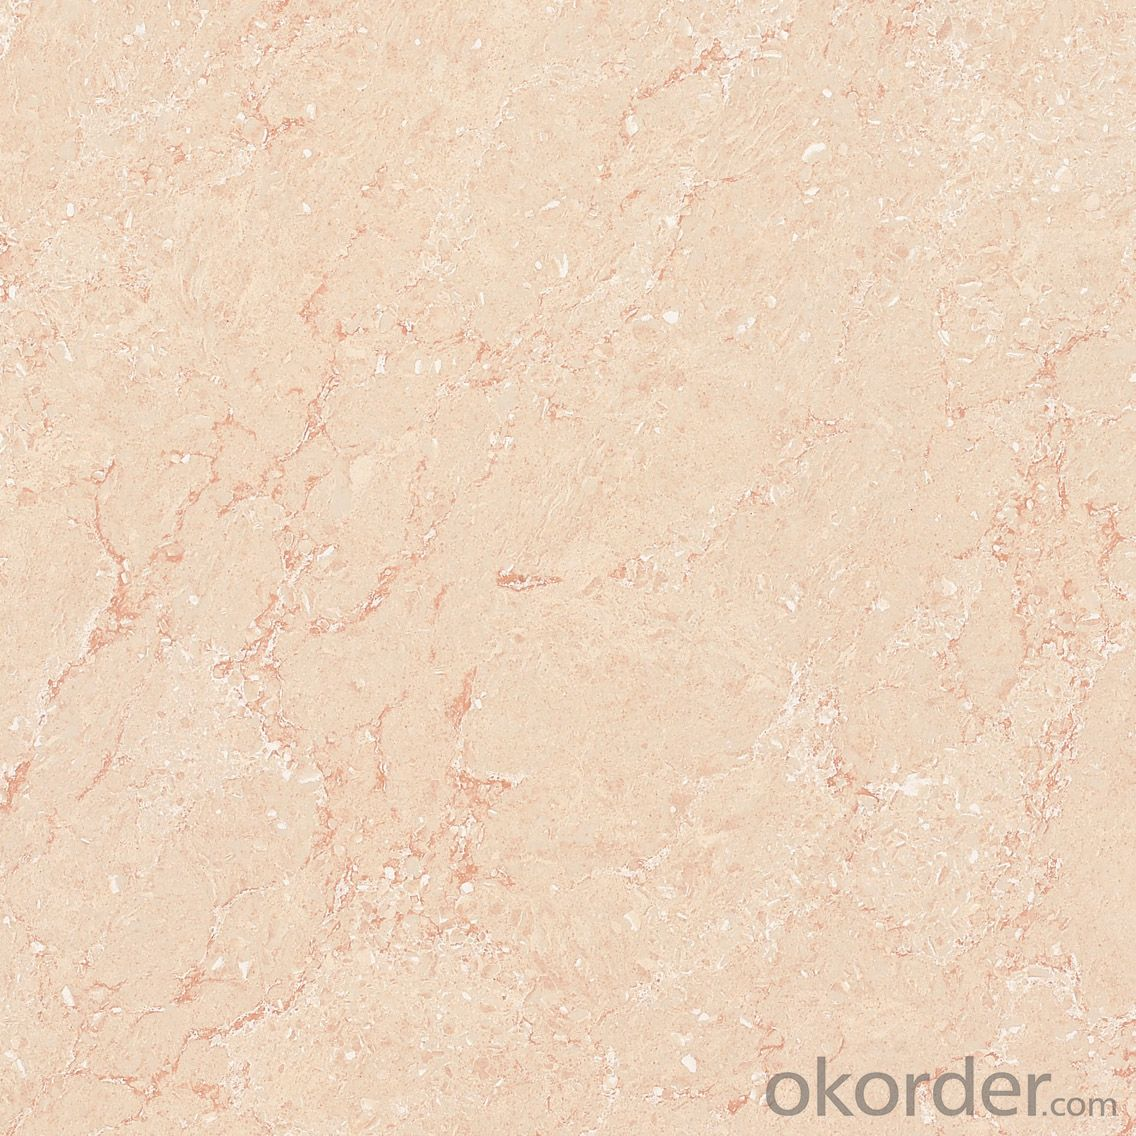 Polished Porcelain Tiles 600 Floor Tile Wholesale from China